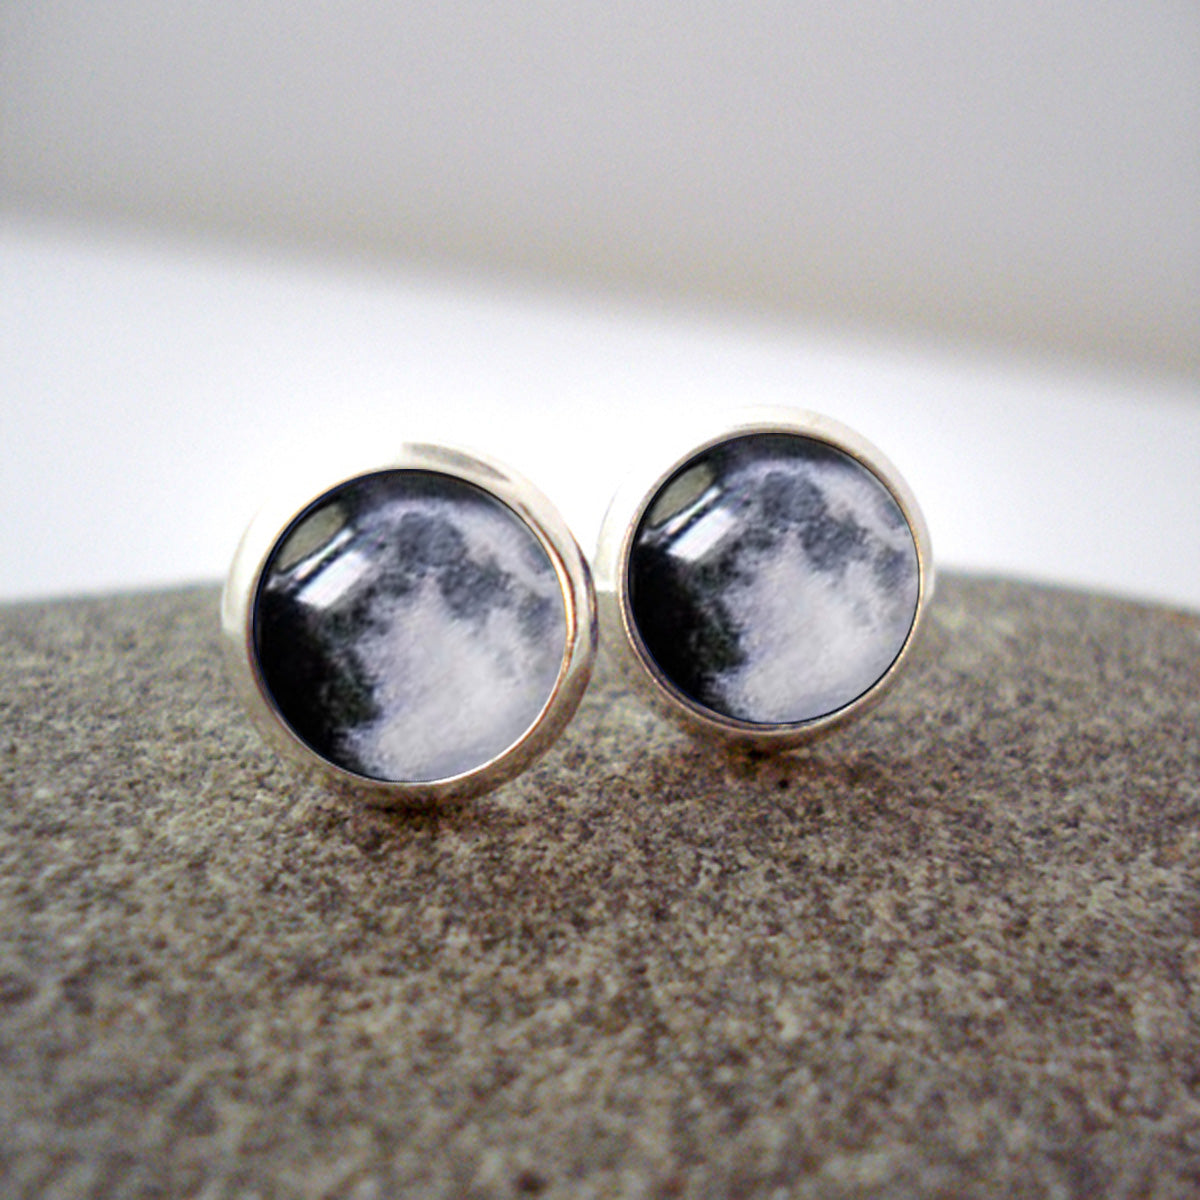 Custom moon phase post earrings - studs with personalized moons from birthday, anniversary, wedding, memorial, special occasion - handmade new age jewelry by yugen tribe